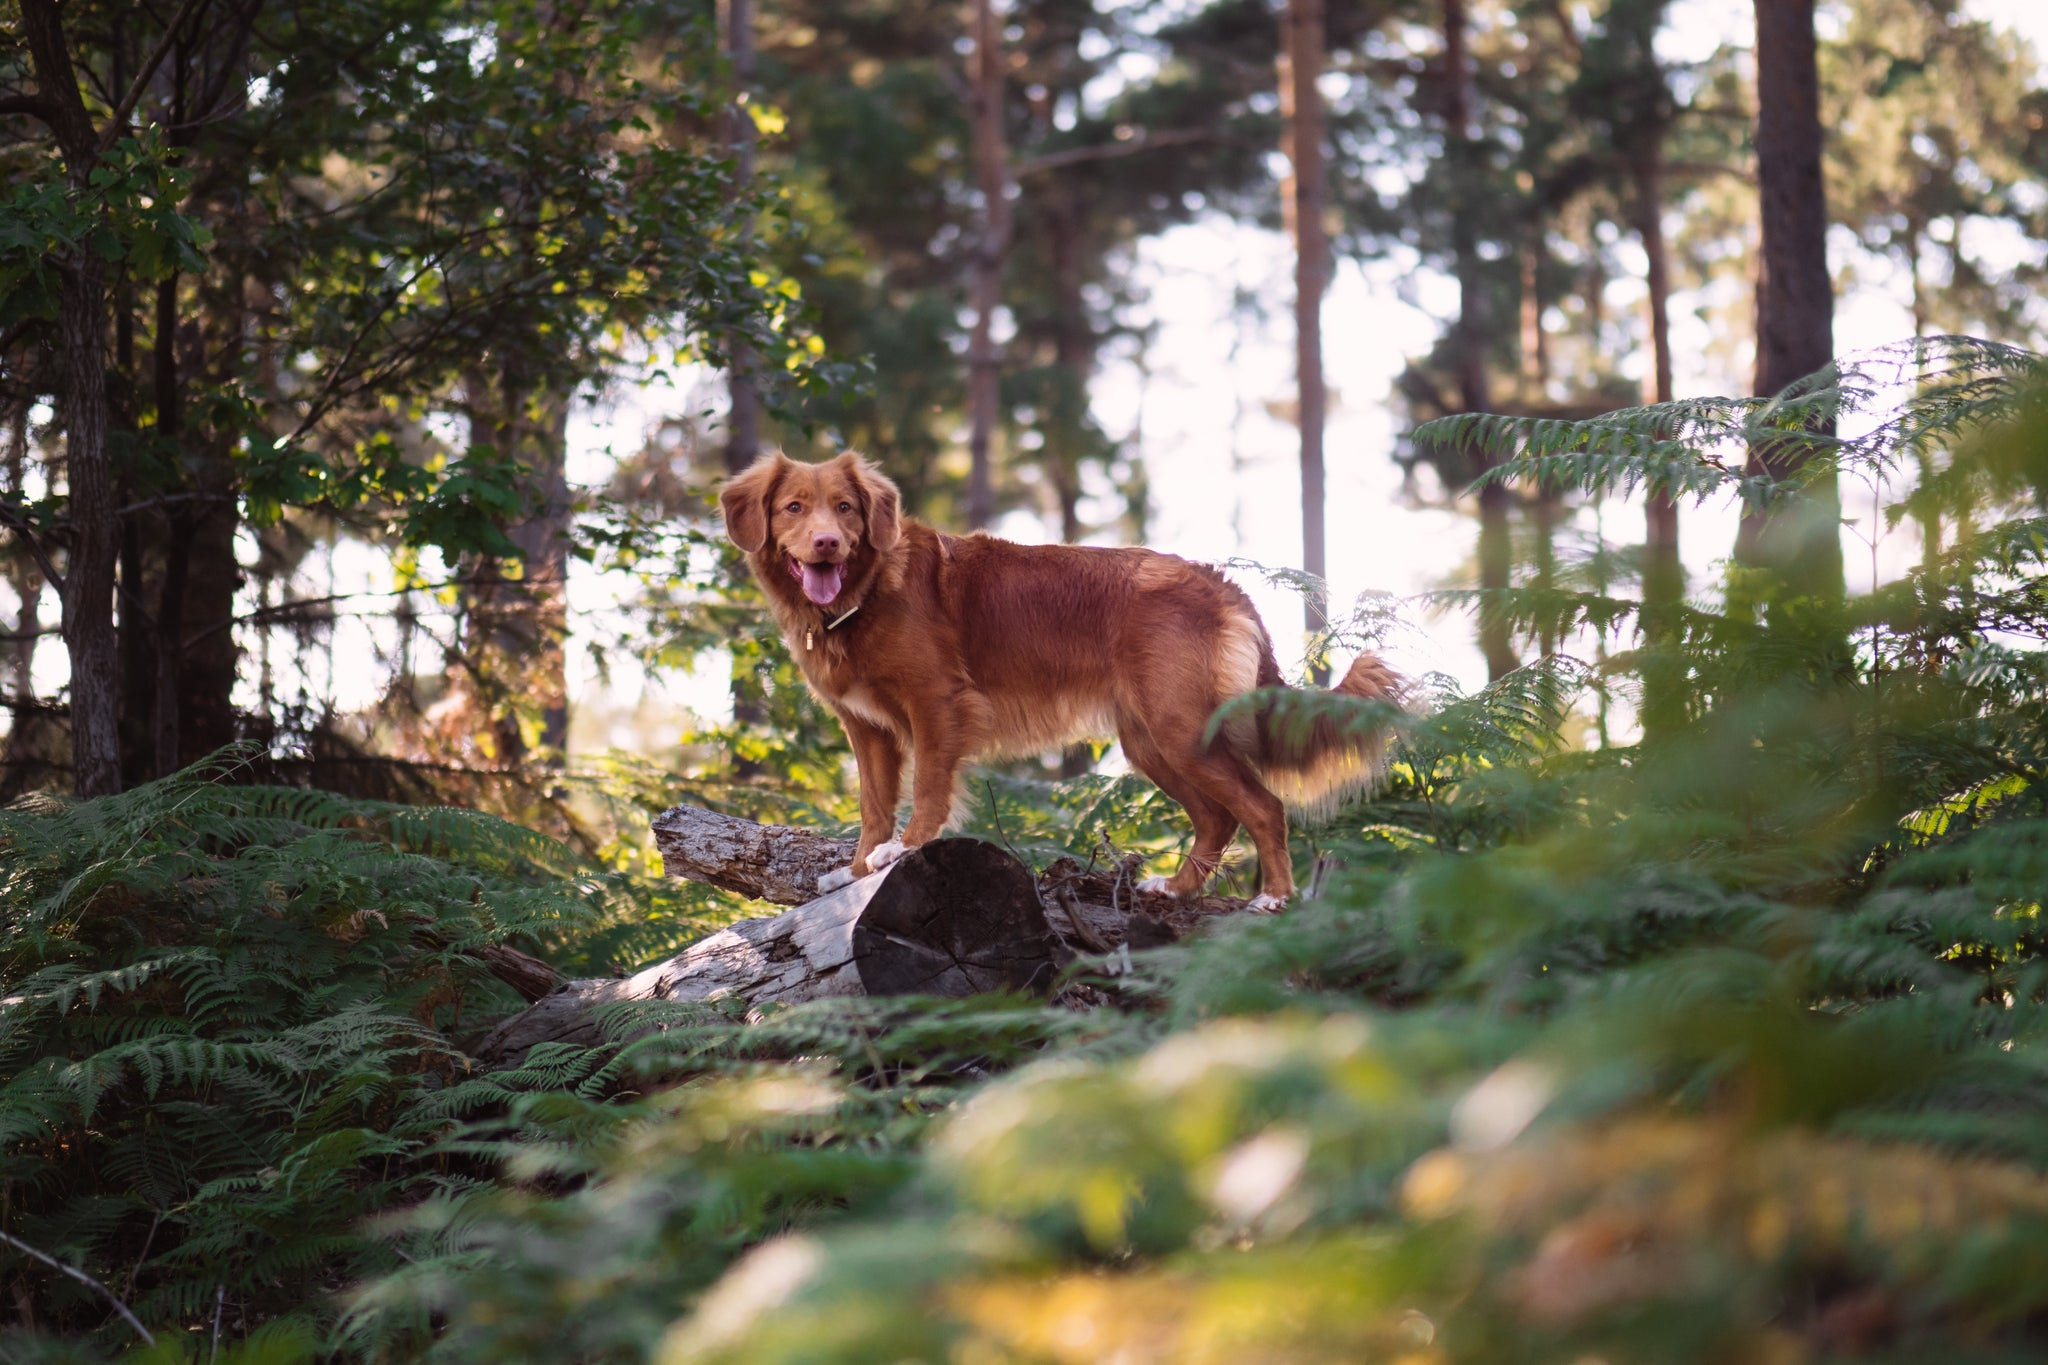 Lyme Disease in Dogs: Prevention, Symptoms, and Treatment